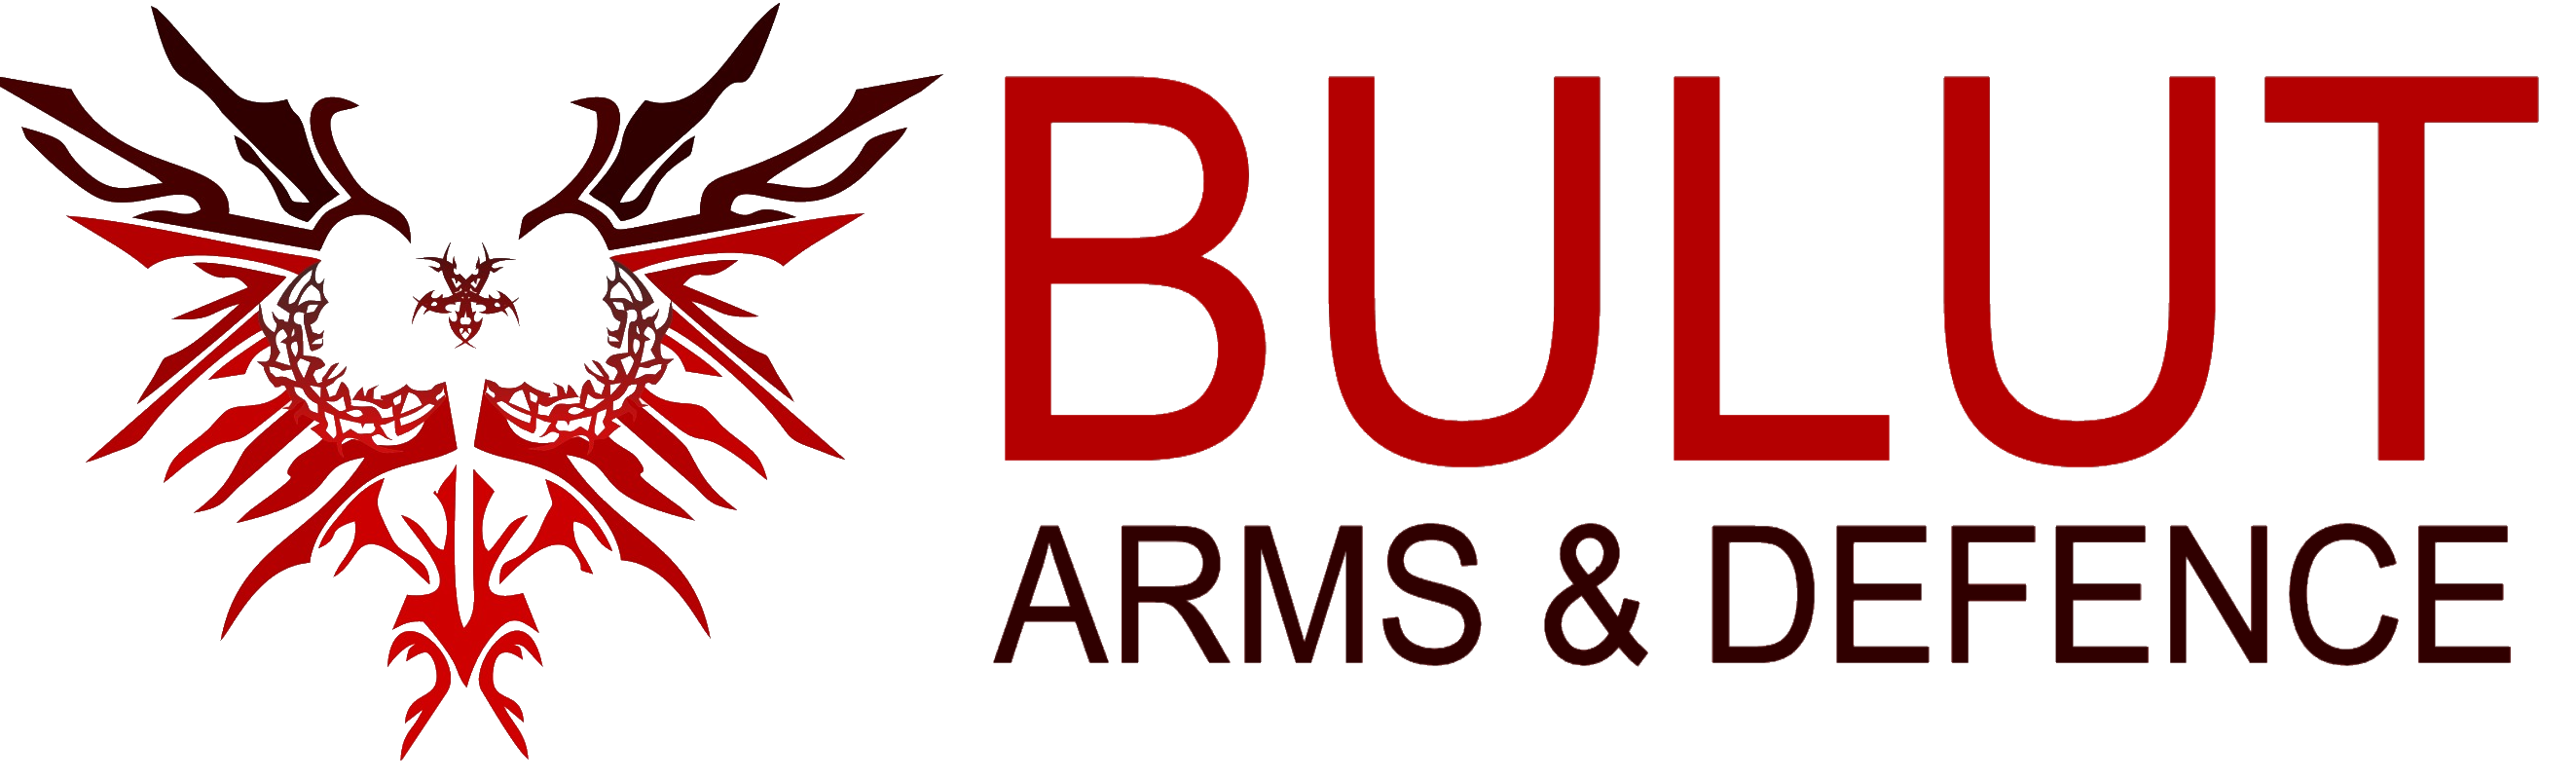 Bulut Arms & Defence